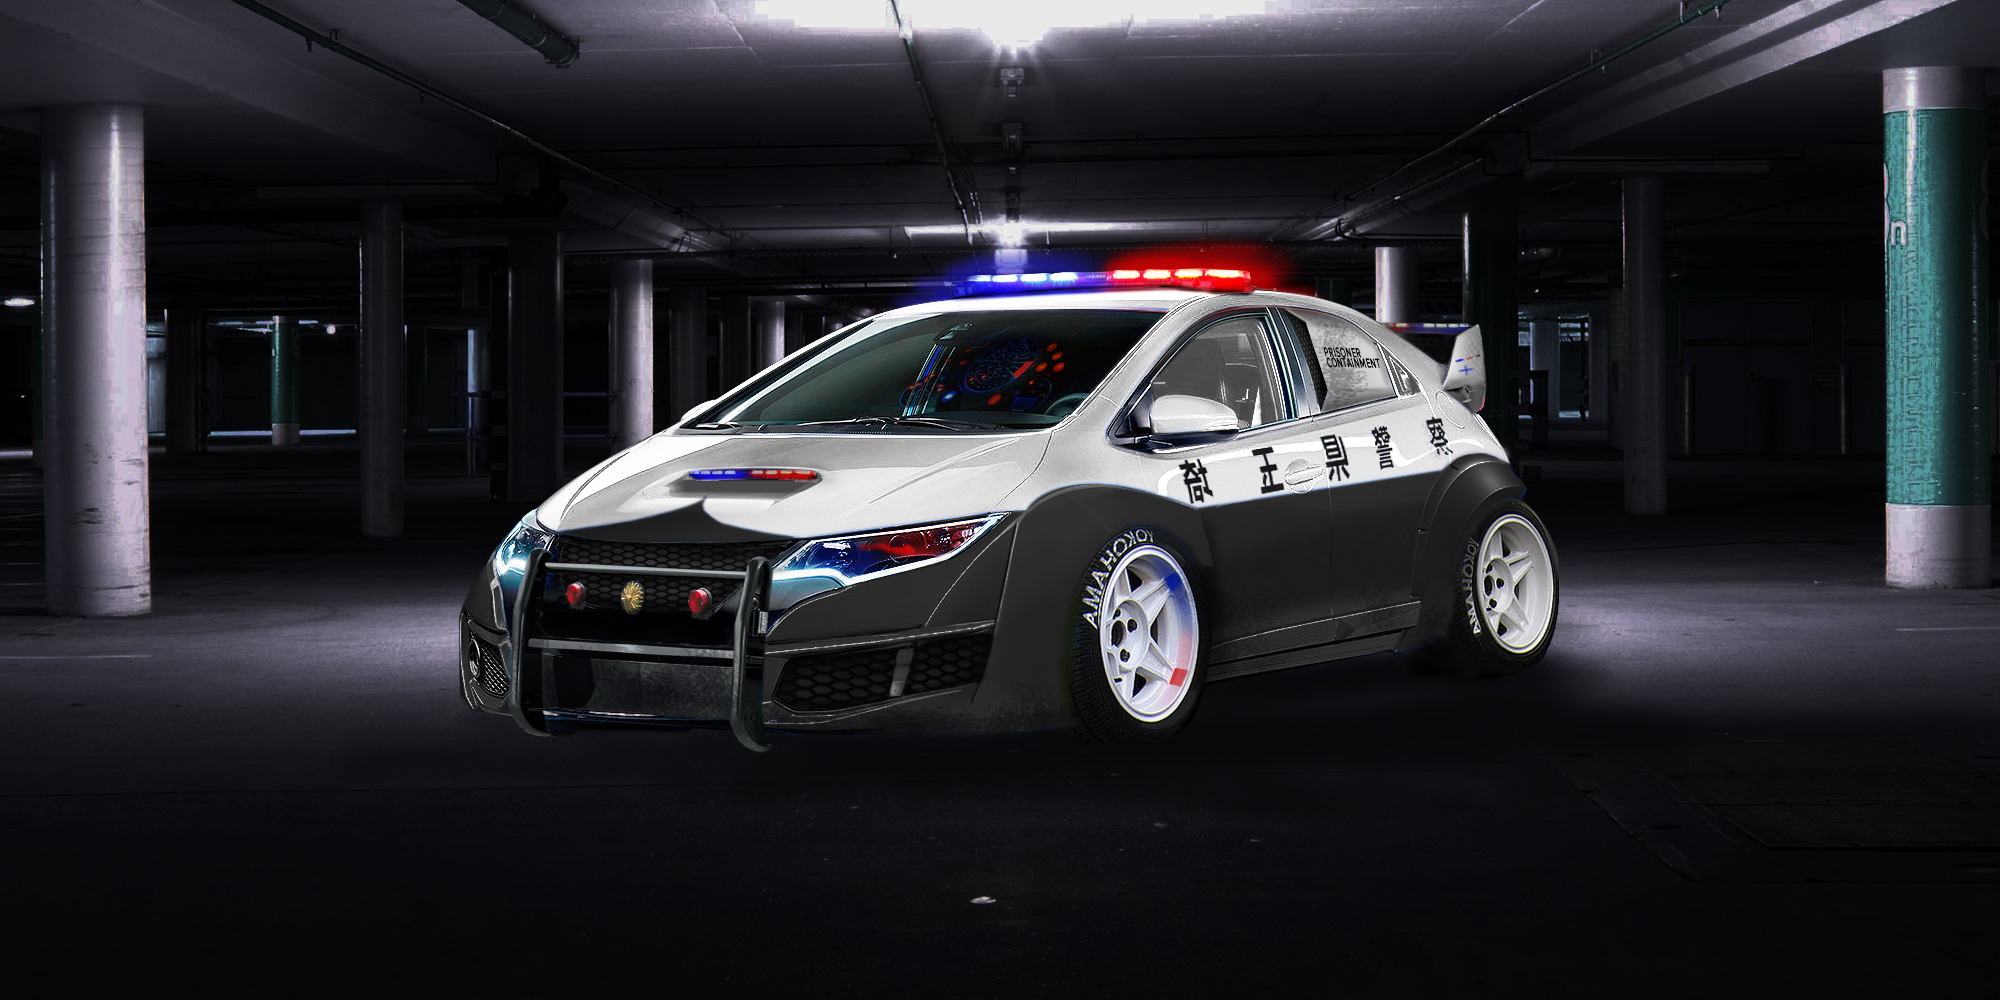 Honda civic police car wide body and lowered, definitely wont be chasing  you over speed bumps